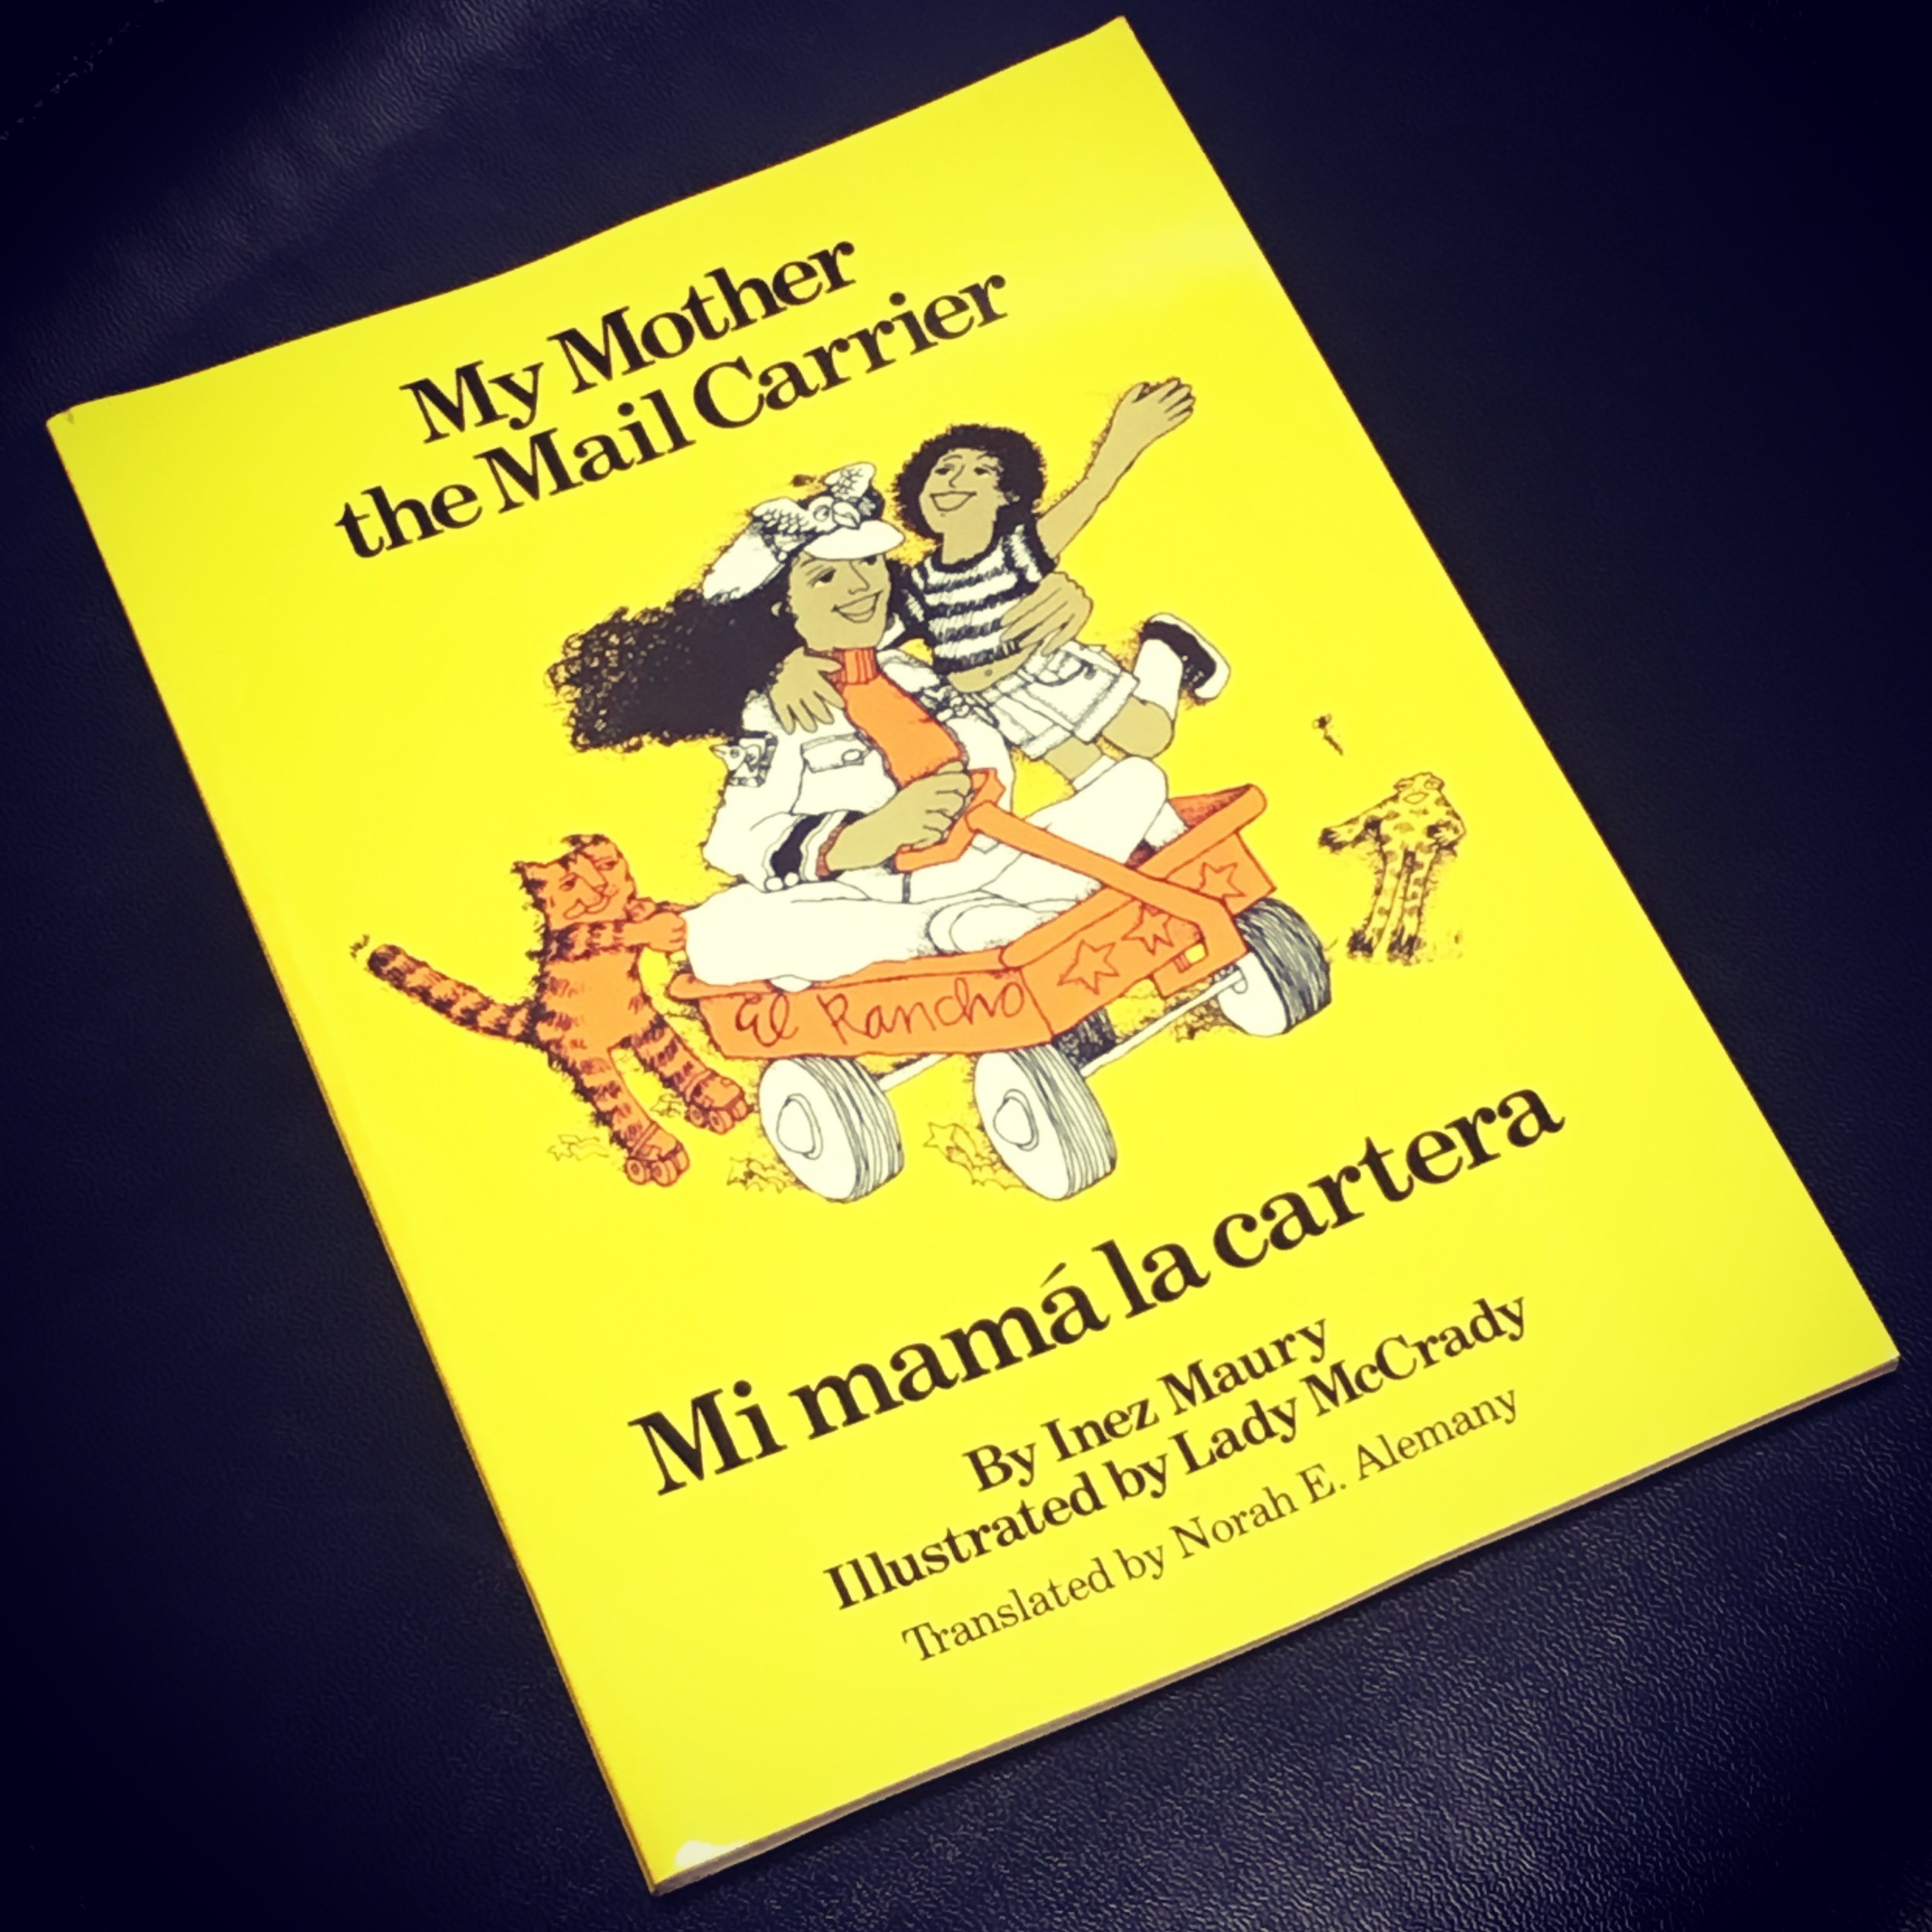 Alyea - My Mother the Mail Carrier/Mi mamå la catera by Inez Maury, illustrated by Lady McCrady